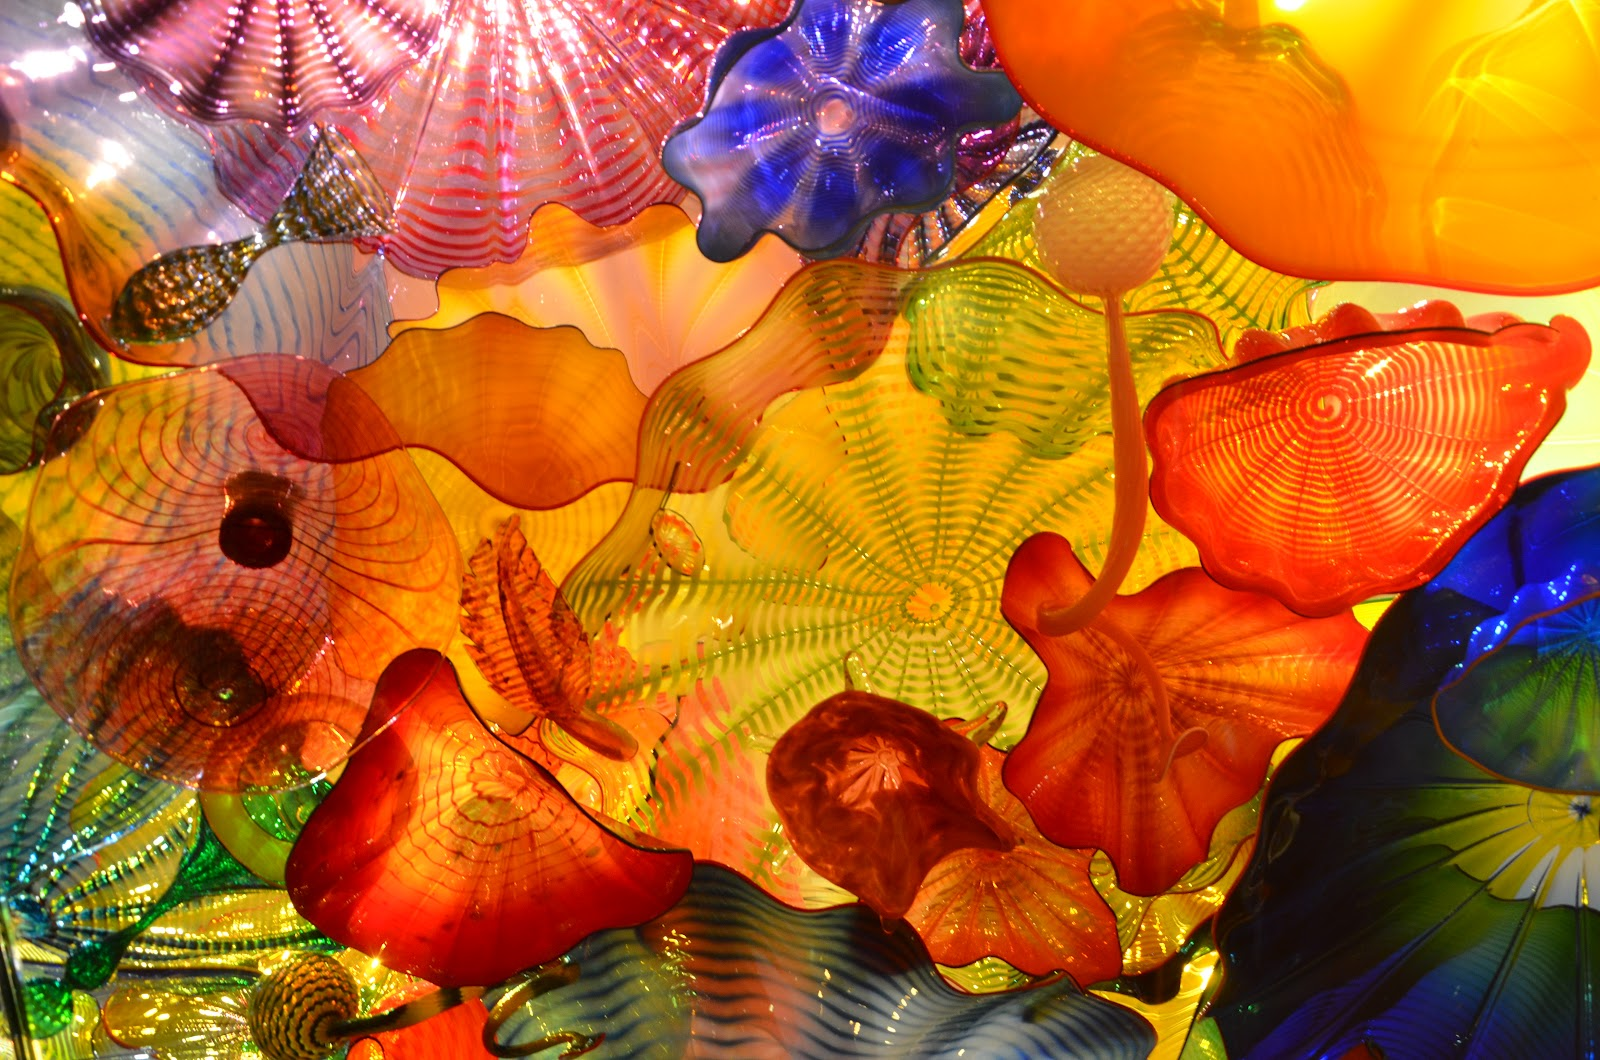 Enjoying Life With Nina In Seattle A Must See Chihuly Garden And Glass Exhibit In Seattle